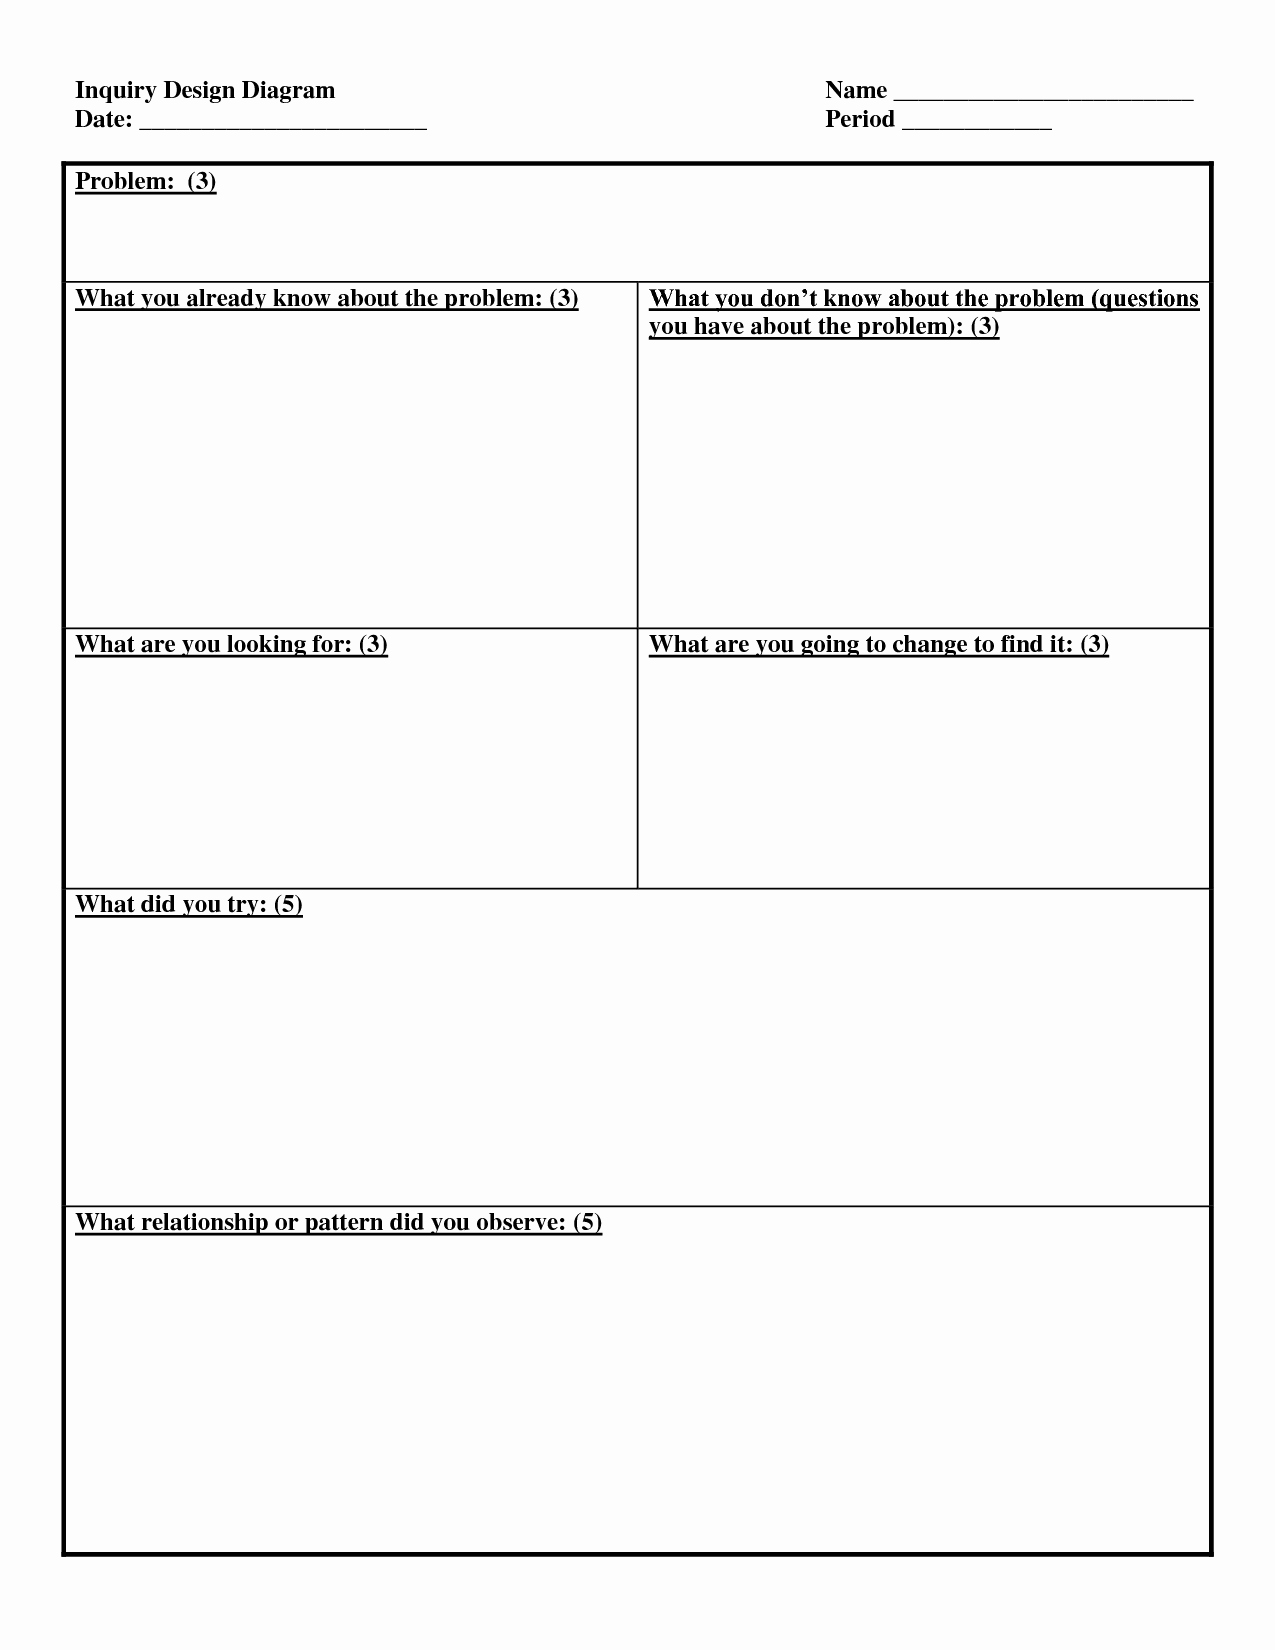 Designing An Experiment Worksheet Best Of Experimental Design Worksheet Template Google Search